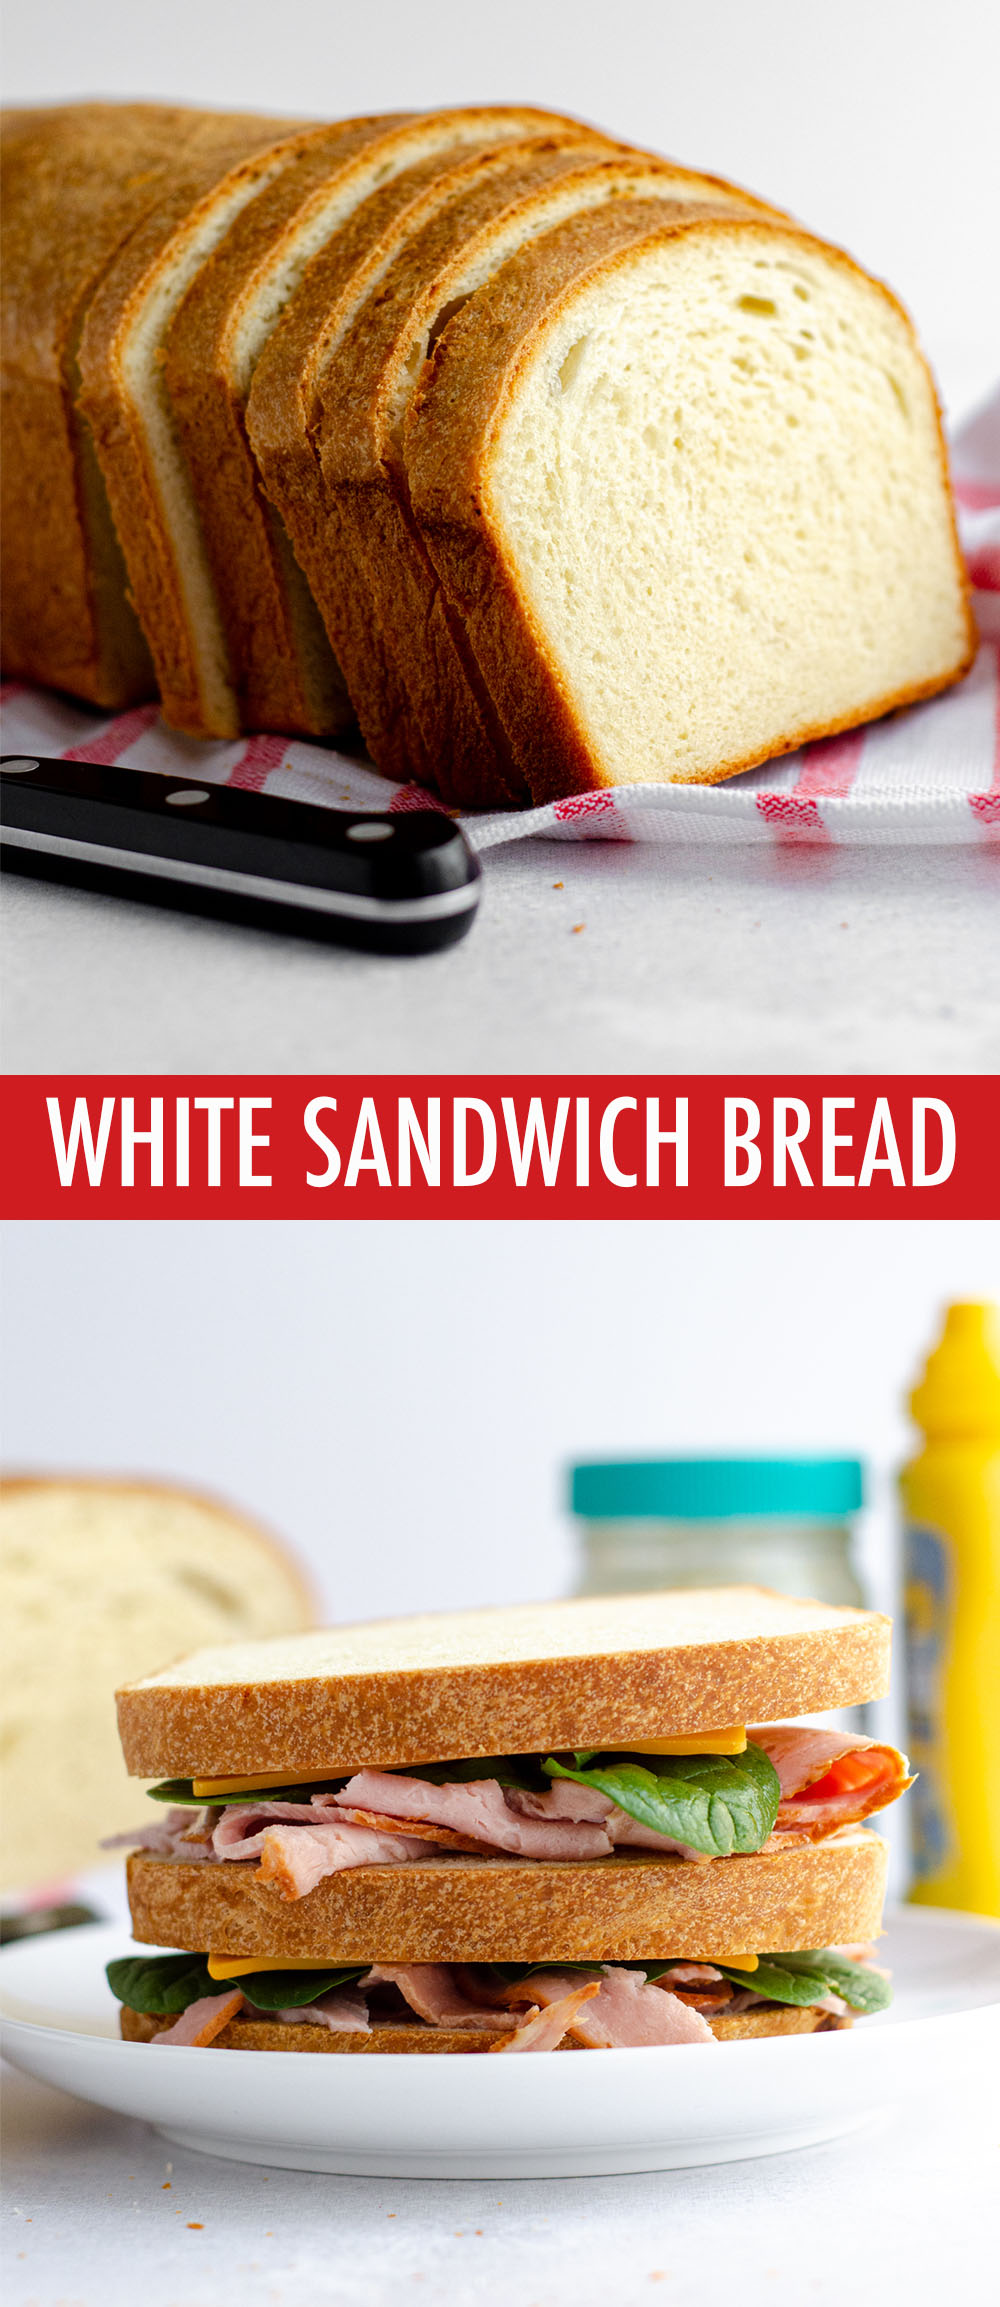 Fluffy, sturdy sandwich bread made right in your own kitchen.